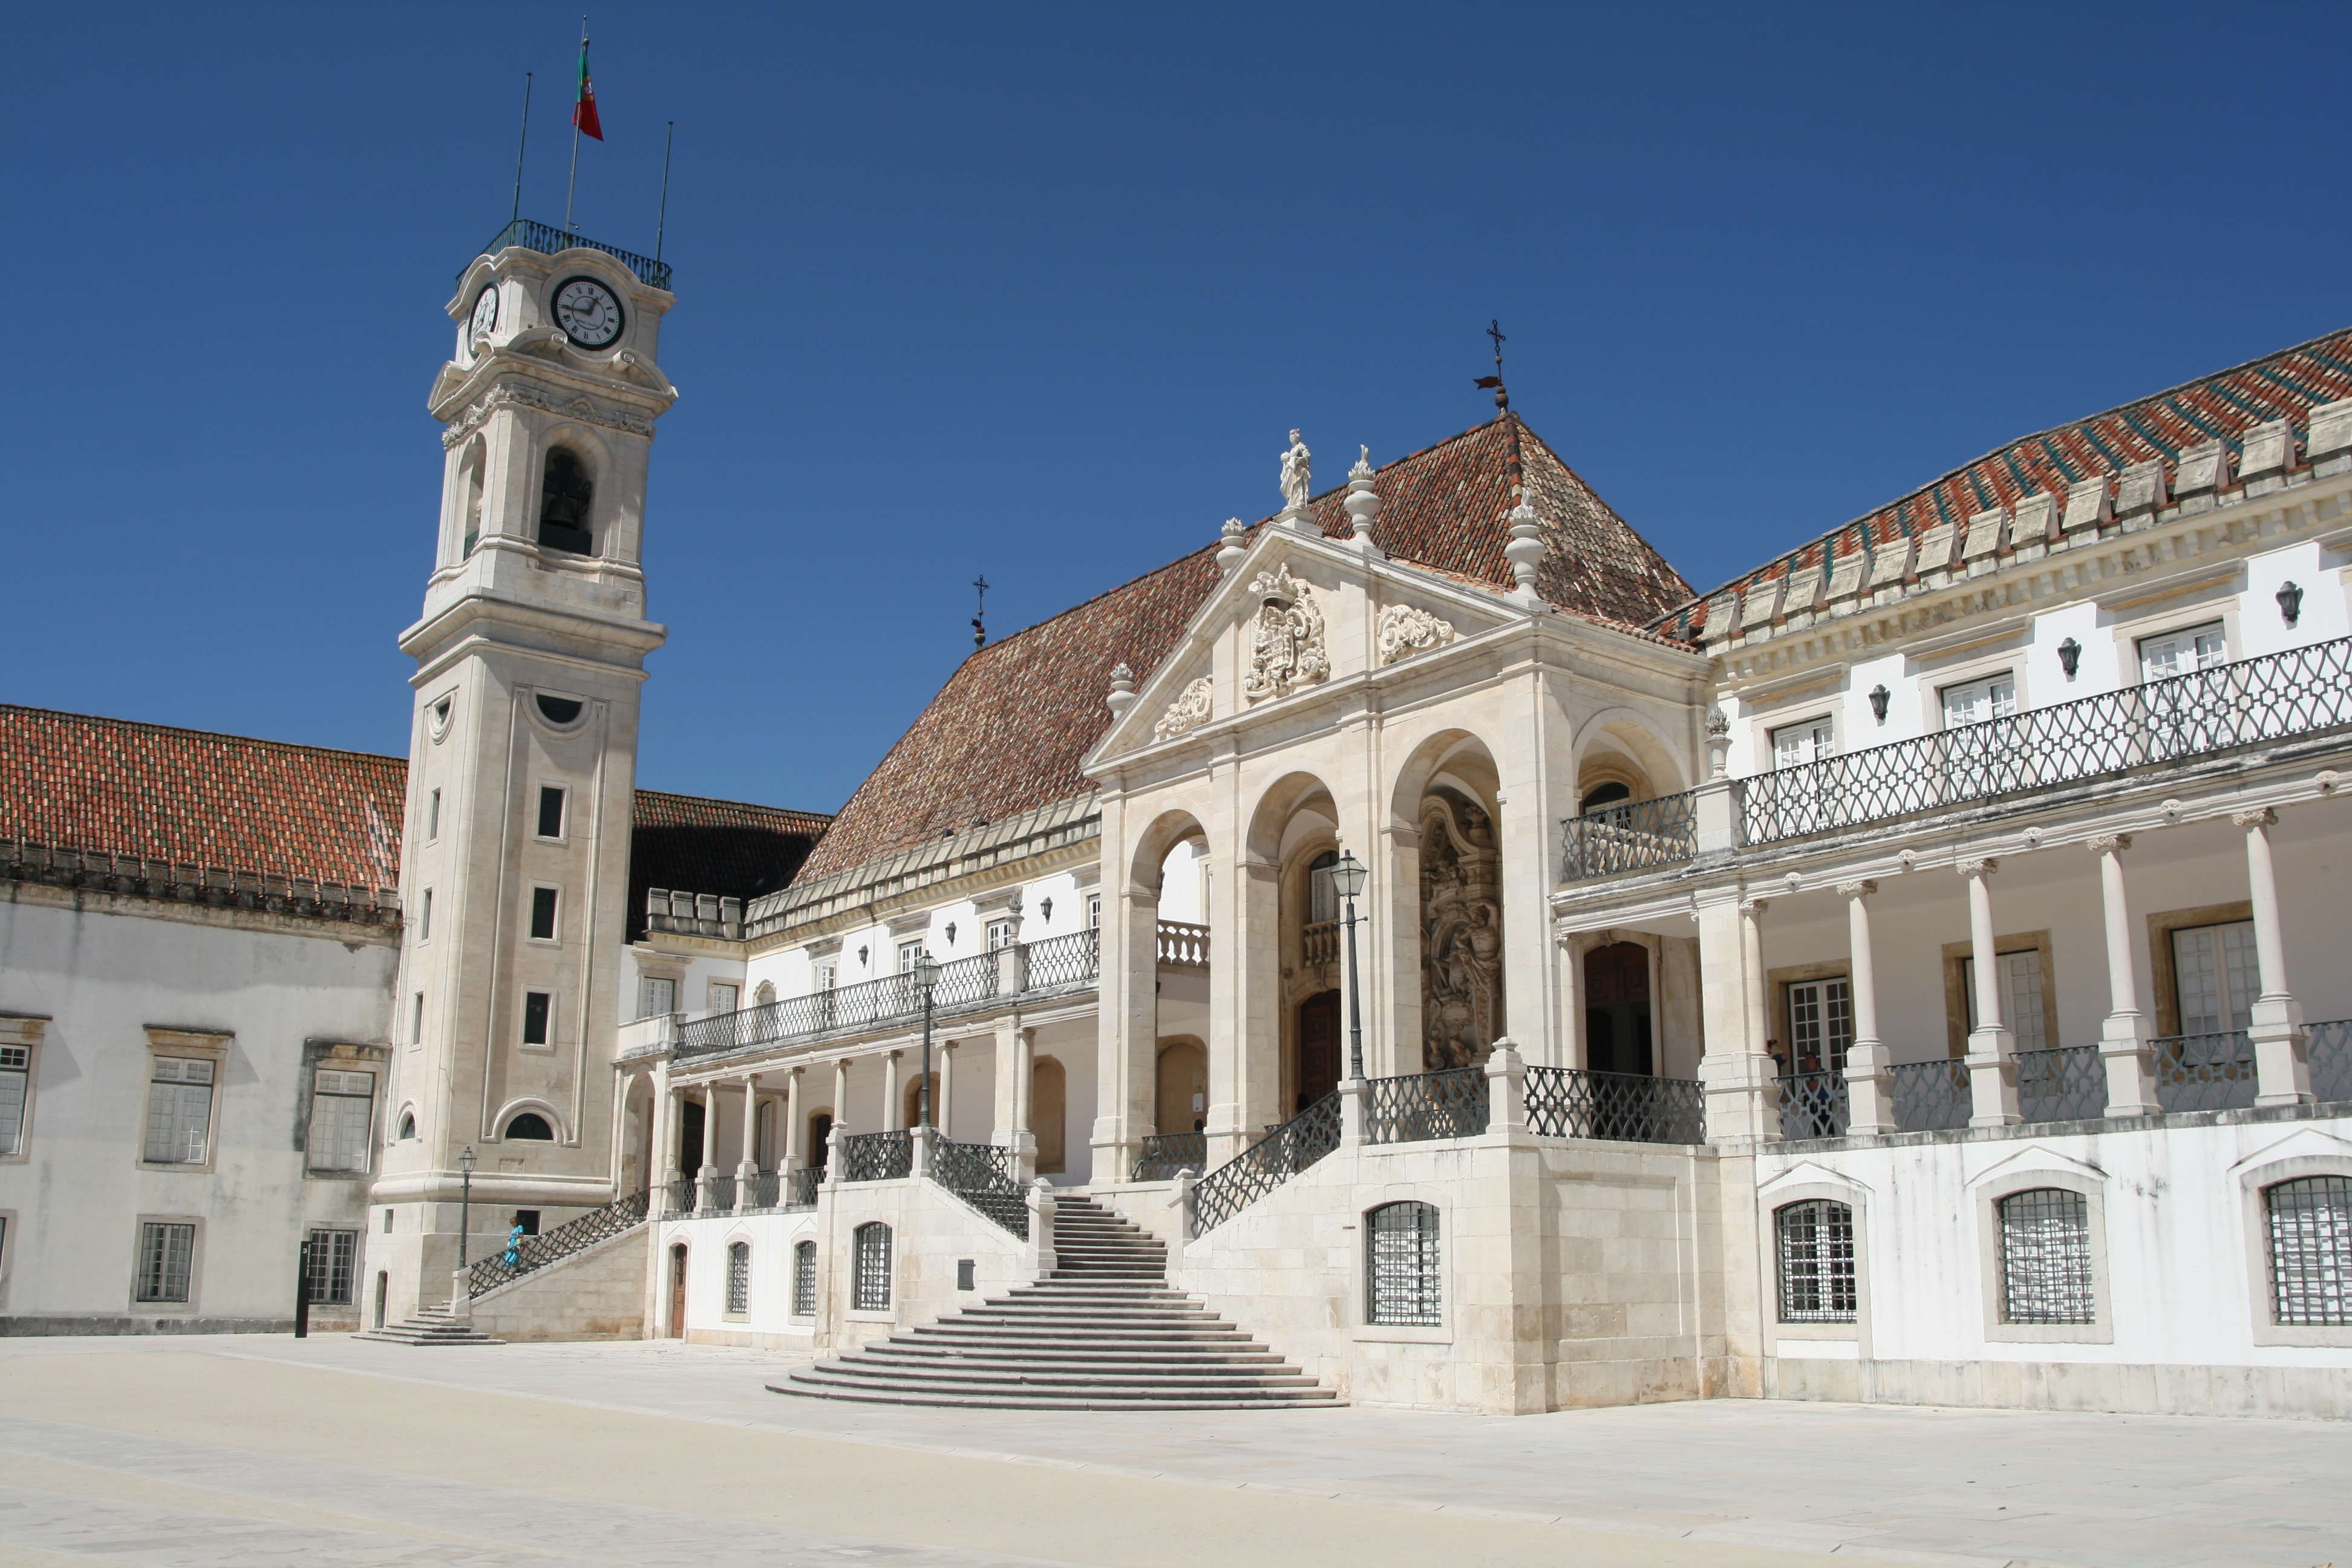 Royal_Palace_Universidade_de_Coimbra_10249002256